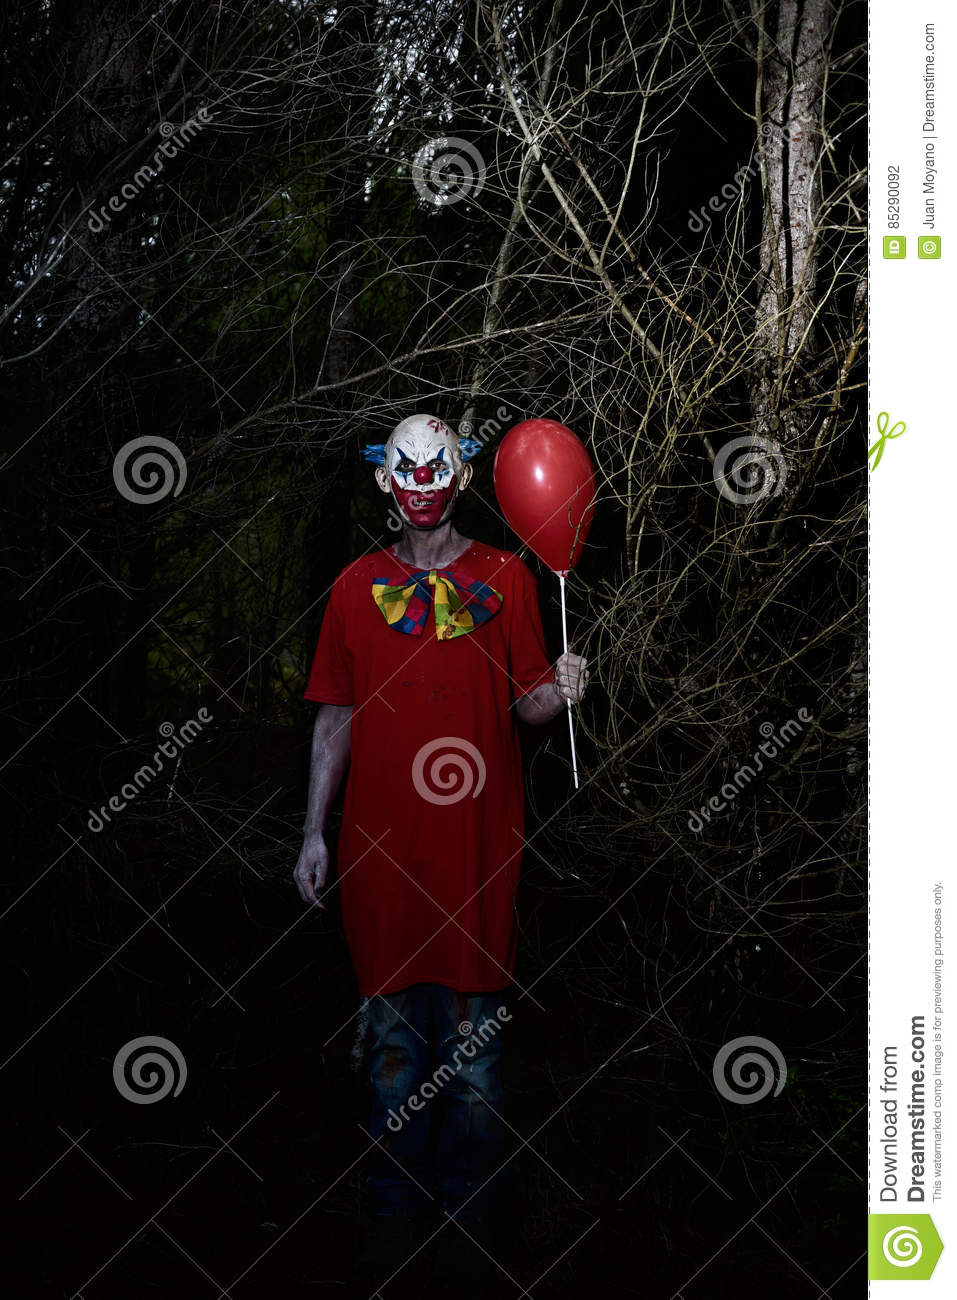 Scary evil clown in the woods at night